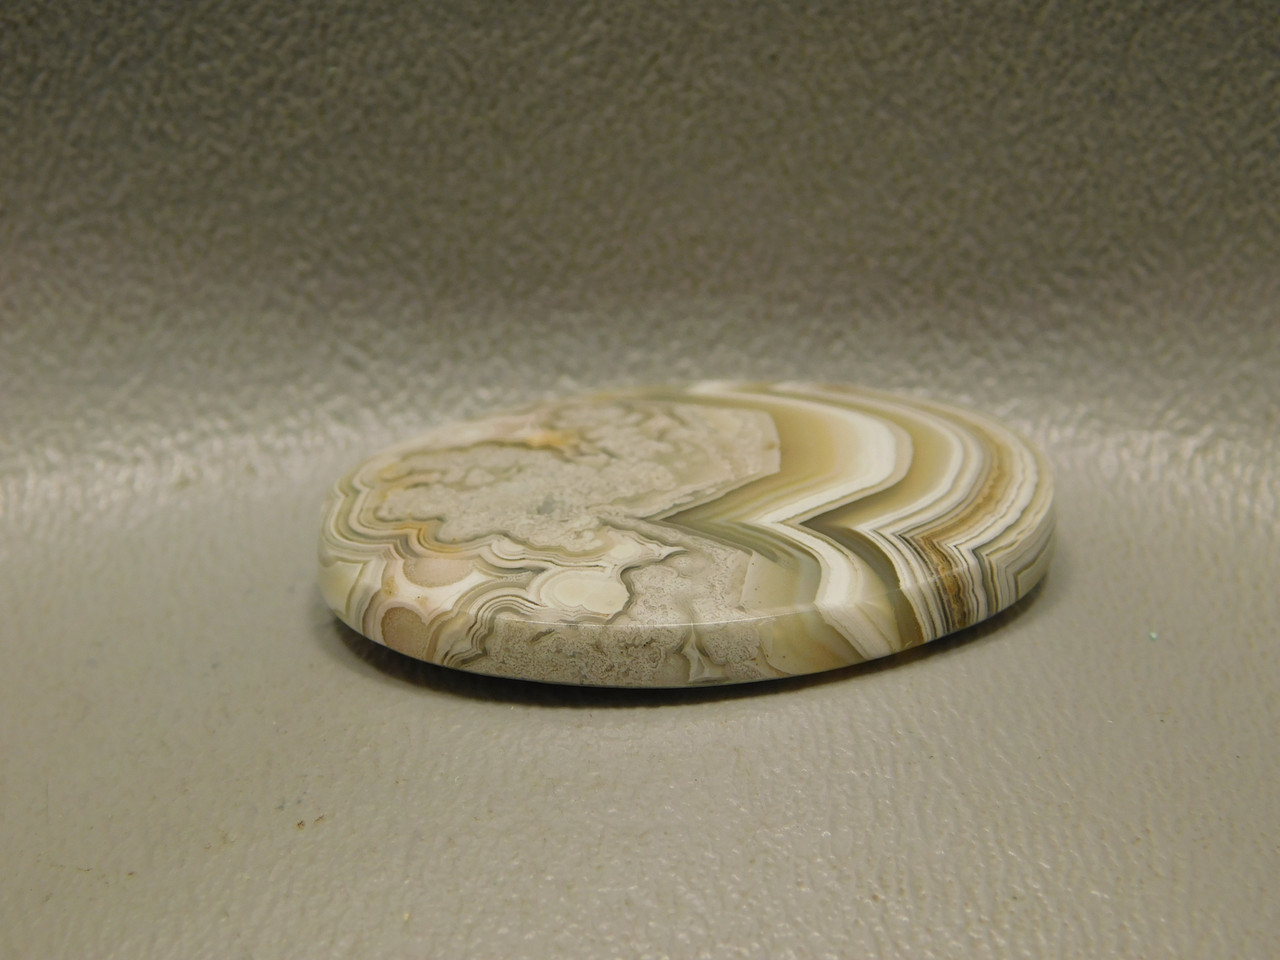 Mexican Crazy Lace Agate Oval White Loose Stone Cabochon #19